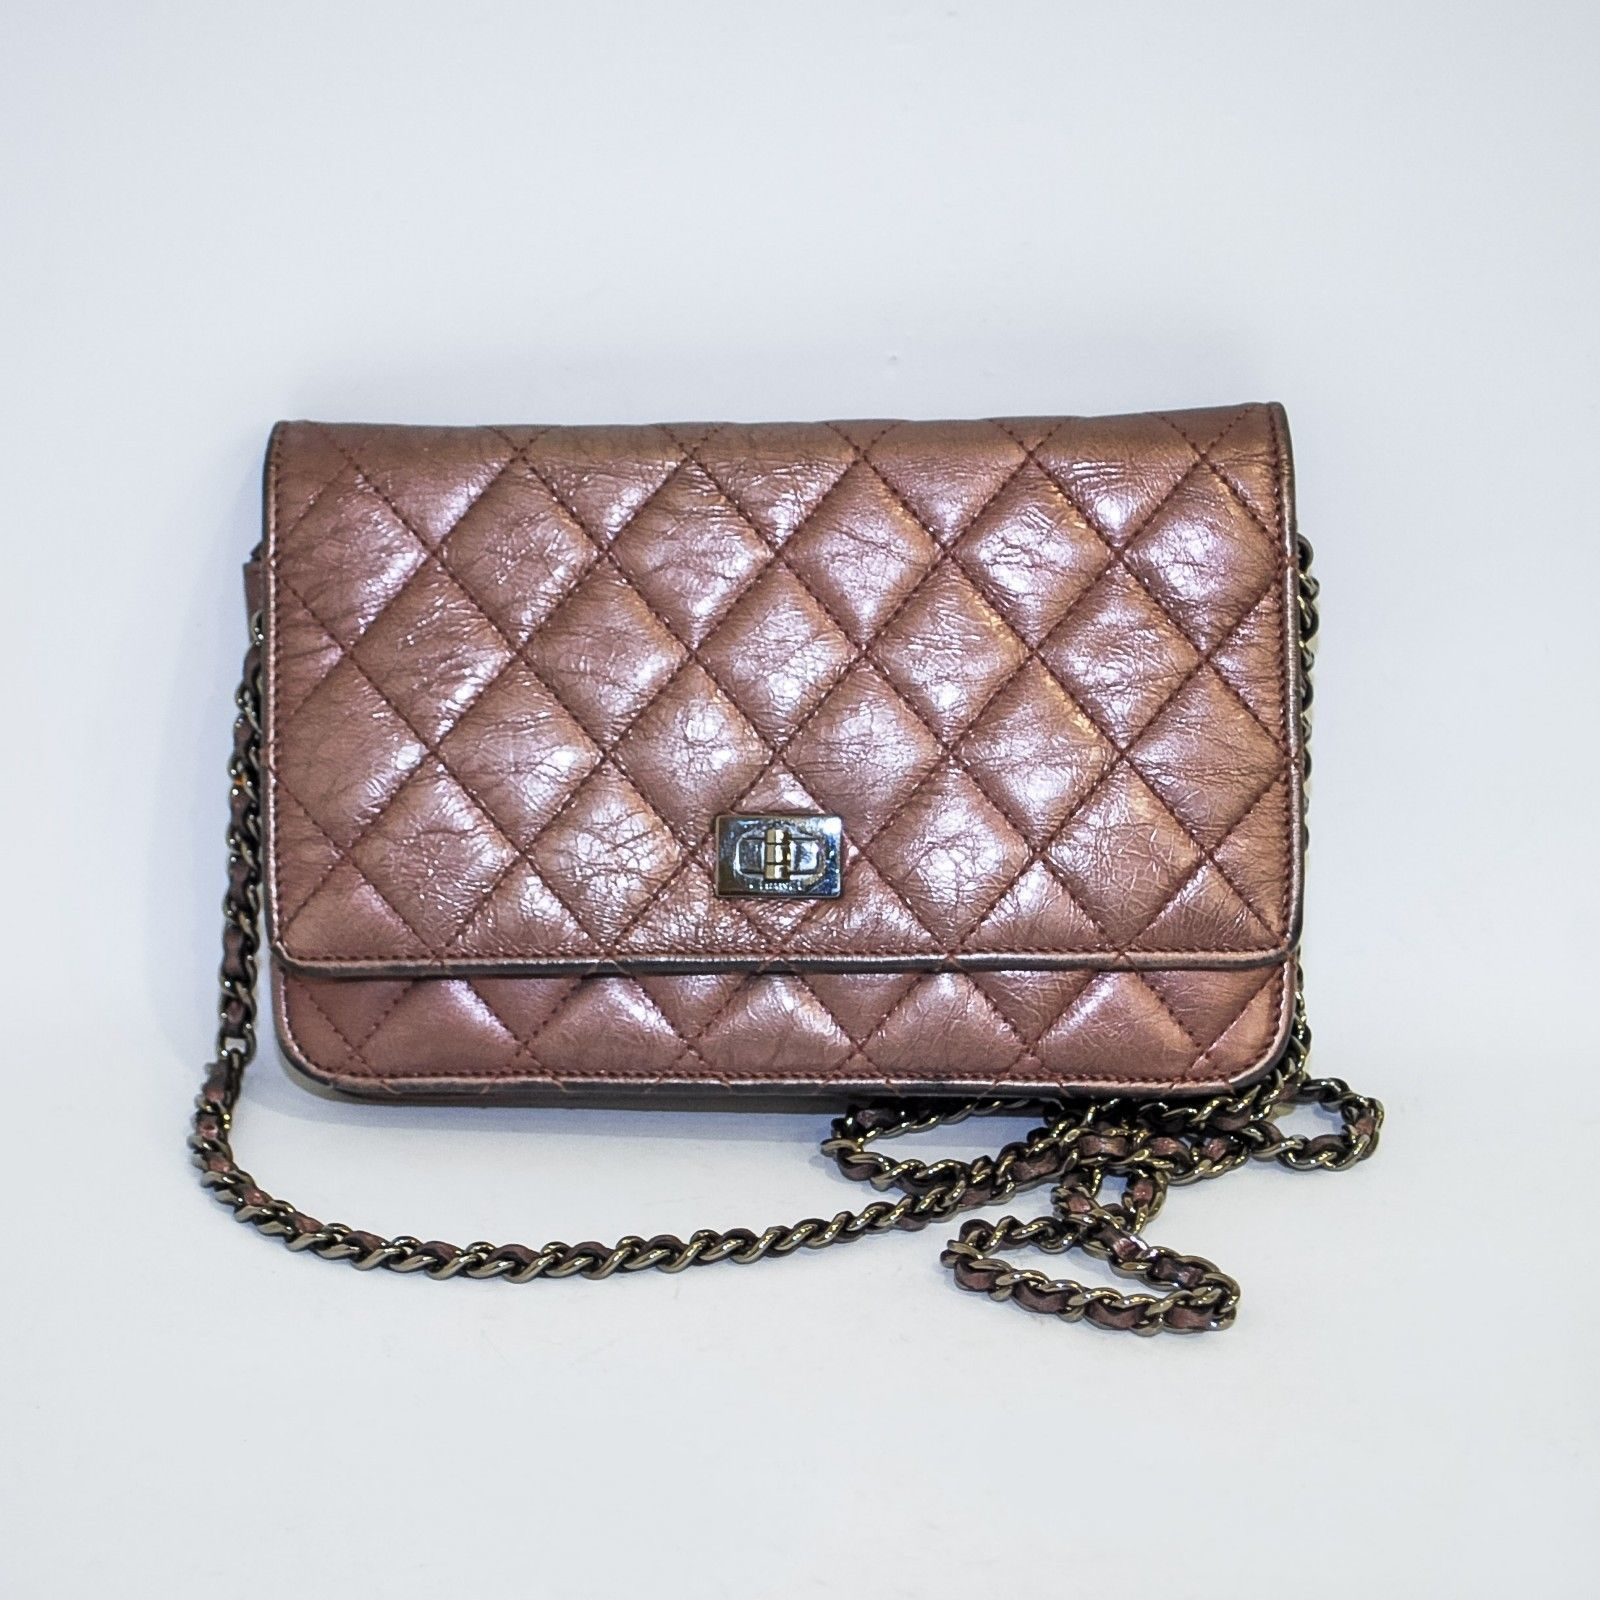 47720b173ea56e 57. 57. Previous. CHANEL Quilted Brown Bronze Wallet On Chain WOC Cross  Body Chain Bag Handbag